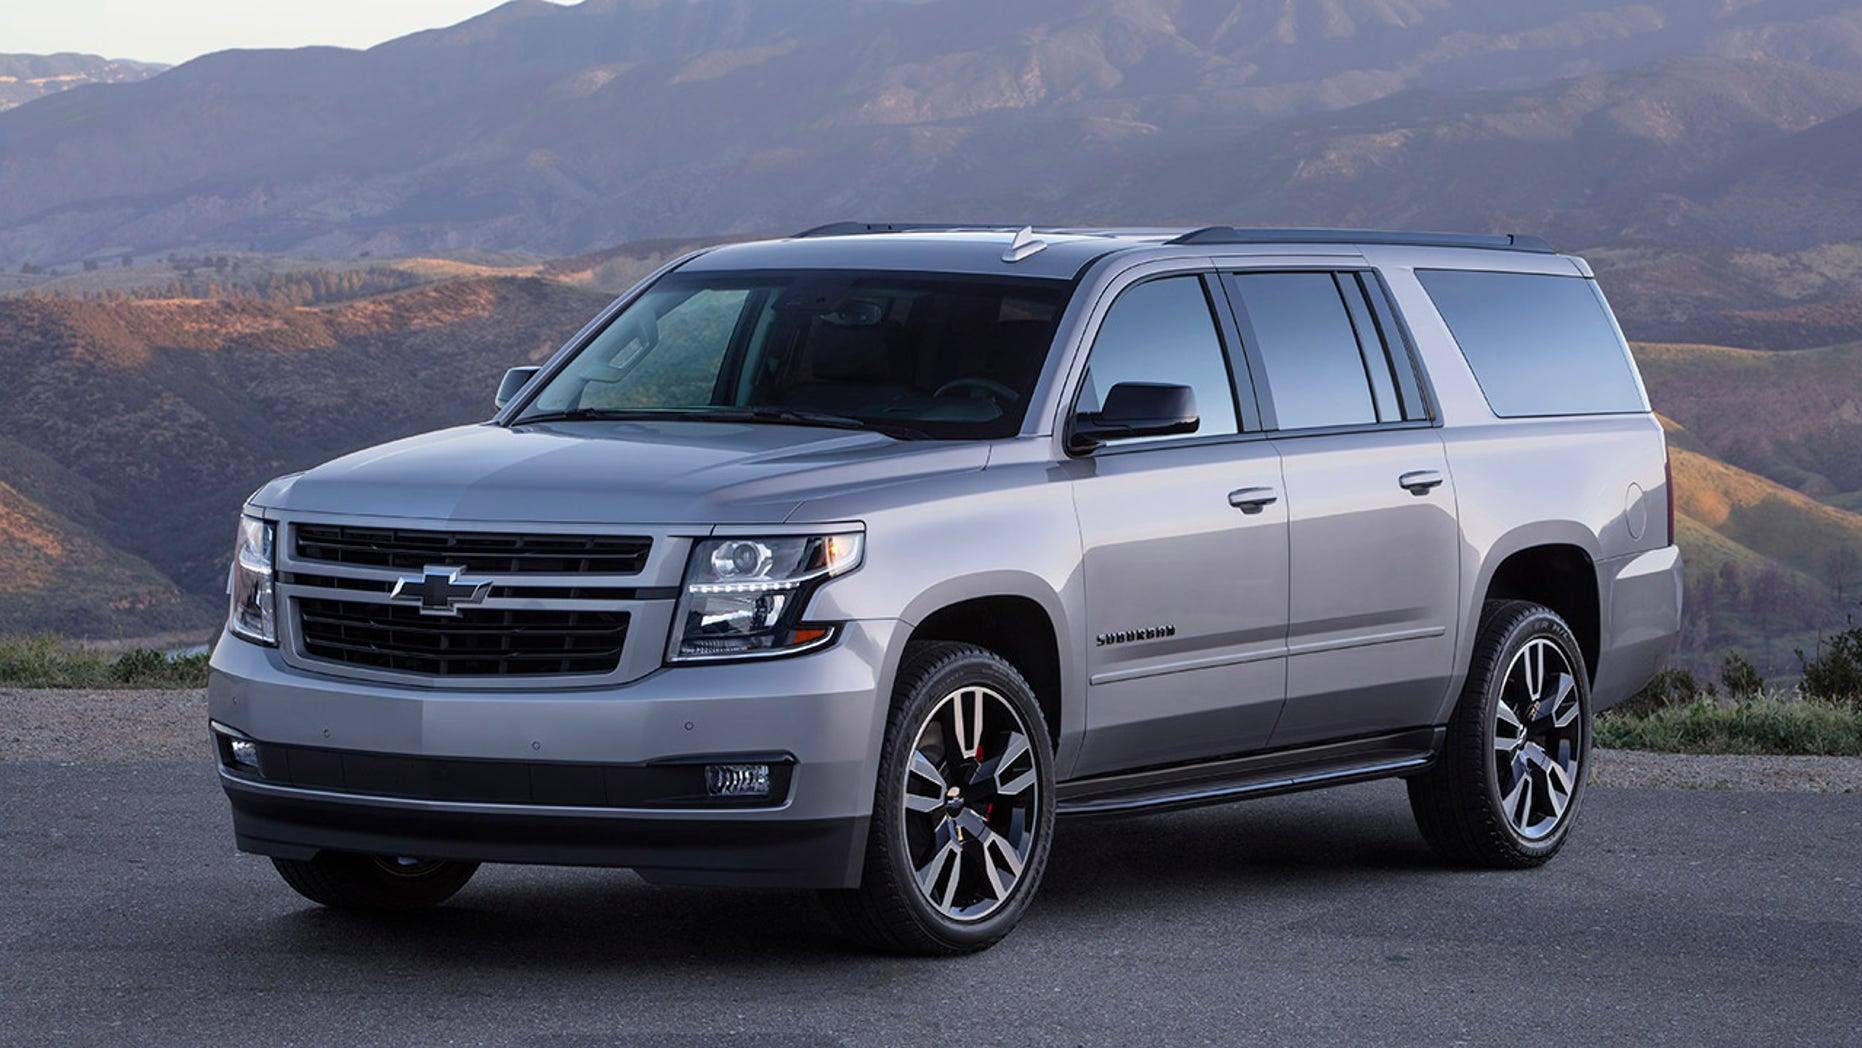 The 2019 Suburban RST Performance Package features a 420-hp, 6.2L V-8 engine, Magnetic Ride Control with performance calibration, and a new Hydra-Matic 10L80 10-speed transmission. Available as an upgrade to the Suburban RST, customers can order the Performance Package in summer 2018.